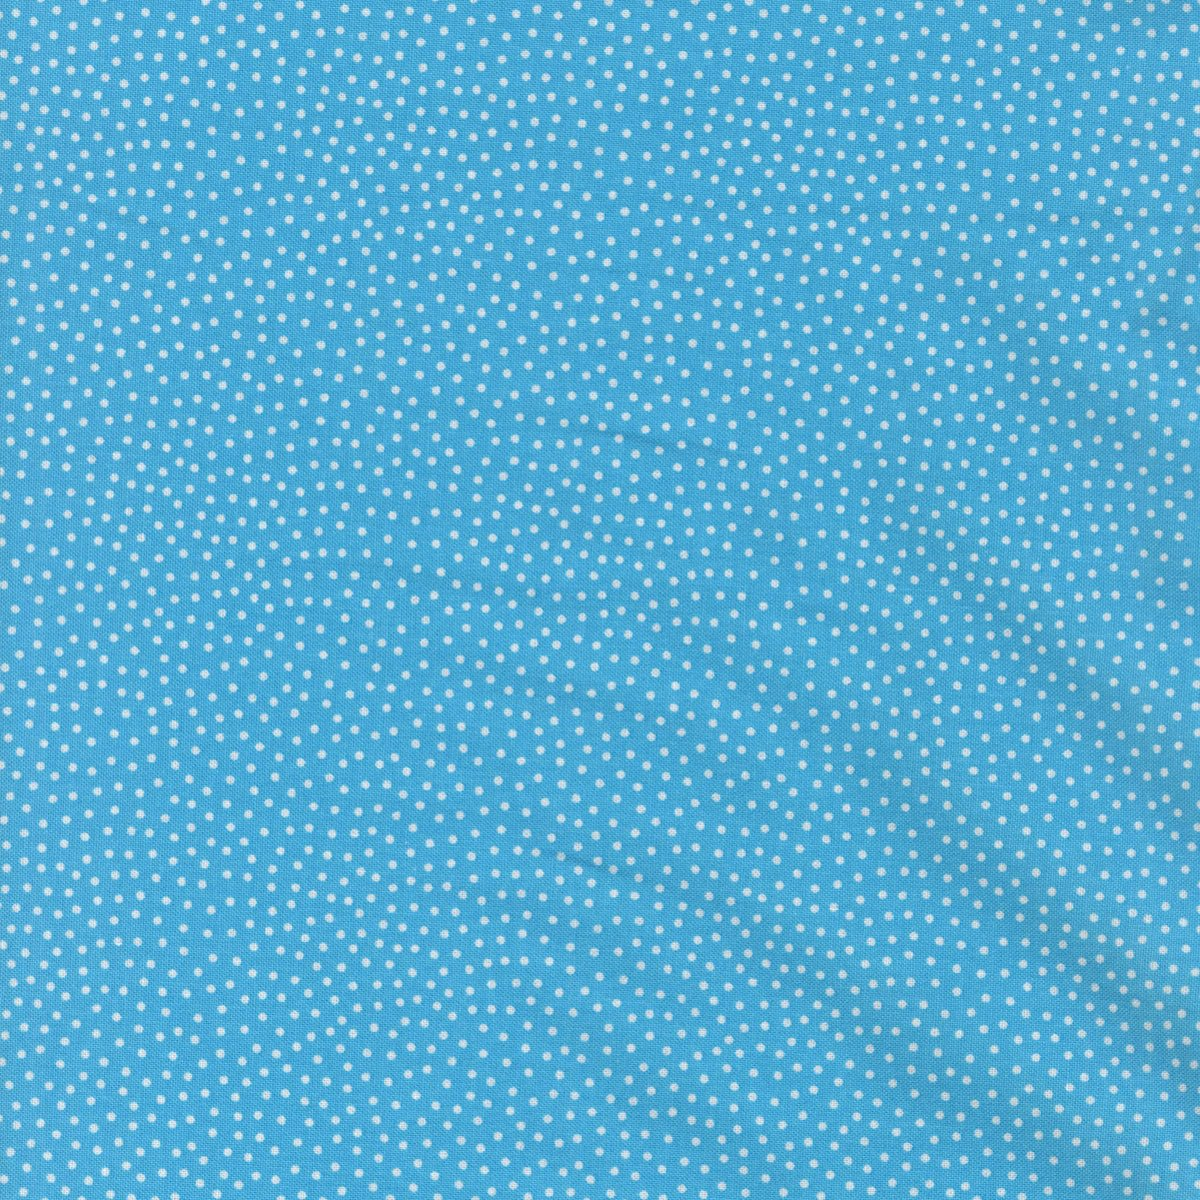 Andover Freckle Dot Teal